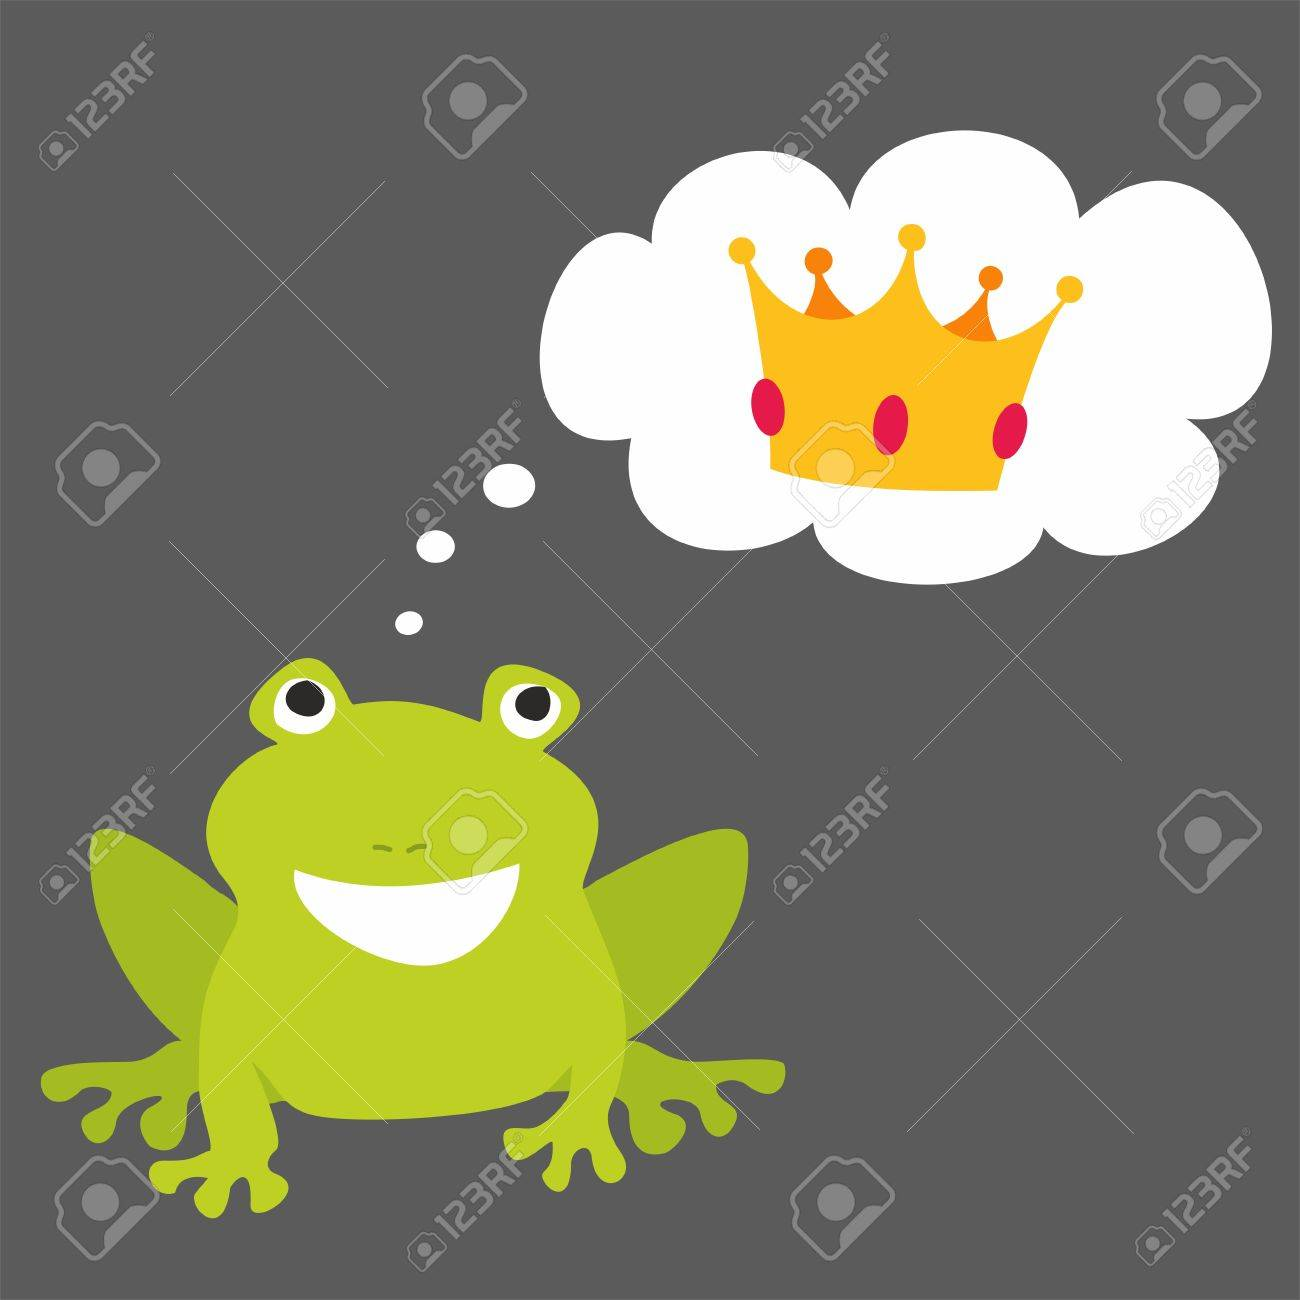 prince or princess frog dreaming about crown vector illustration rh 123rf com Black and White Frog Vector Tree Frog Vector